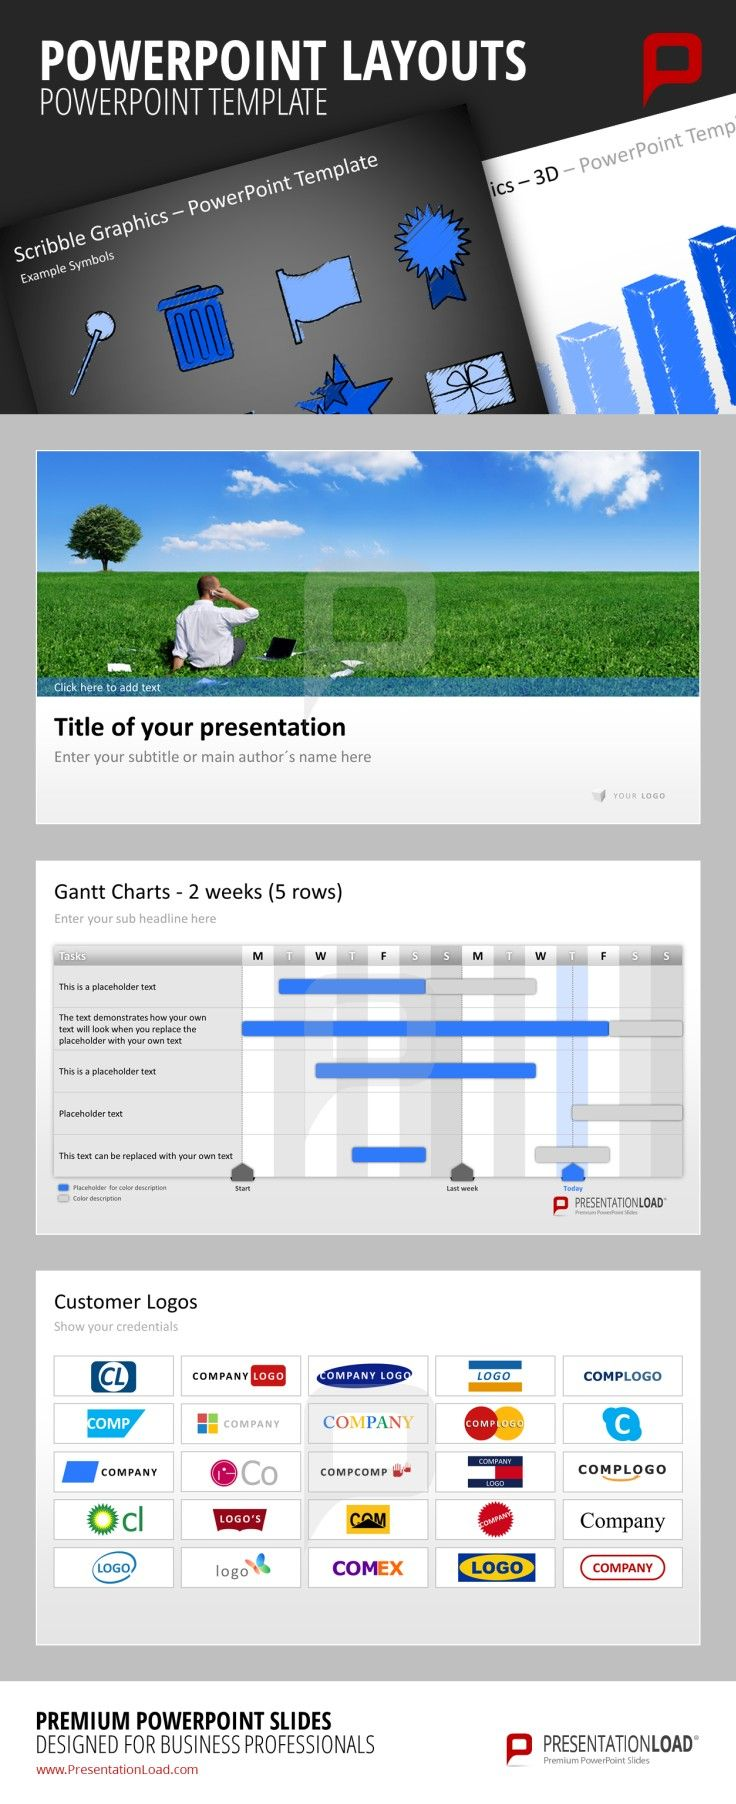 27 best LAYOUT / POWERPOINT images on Pinterest | Charts, Graphics ...